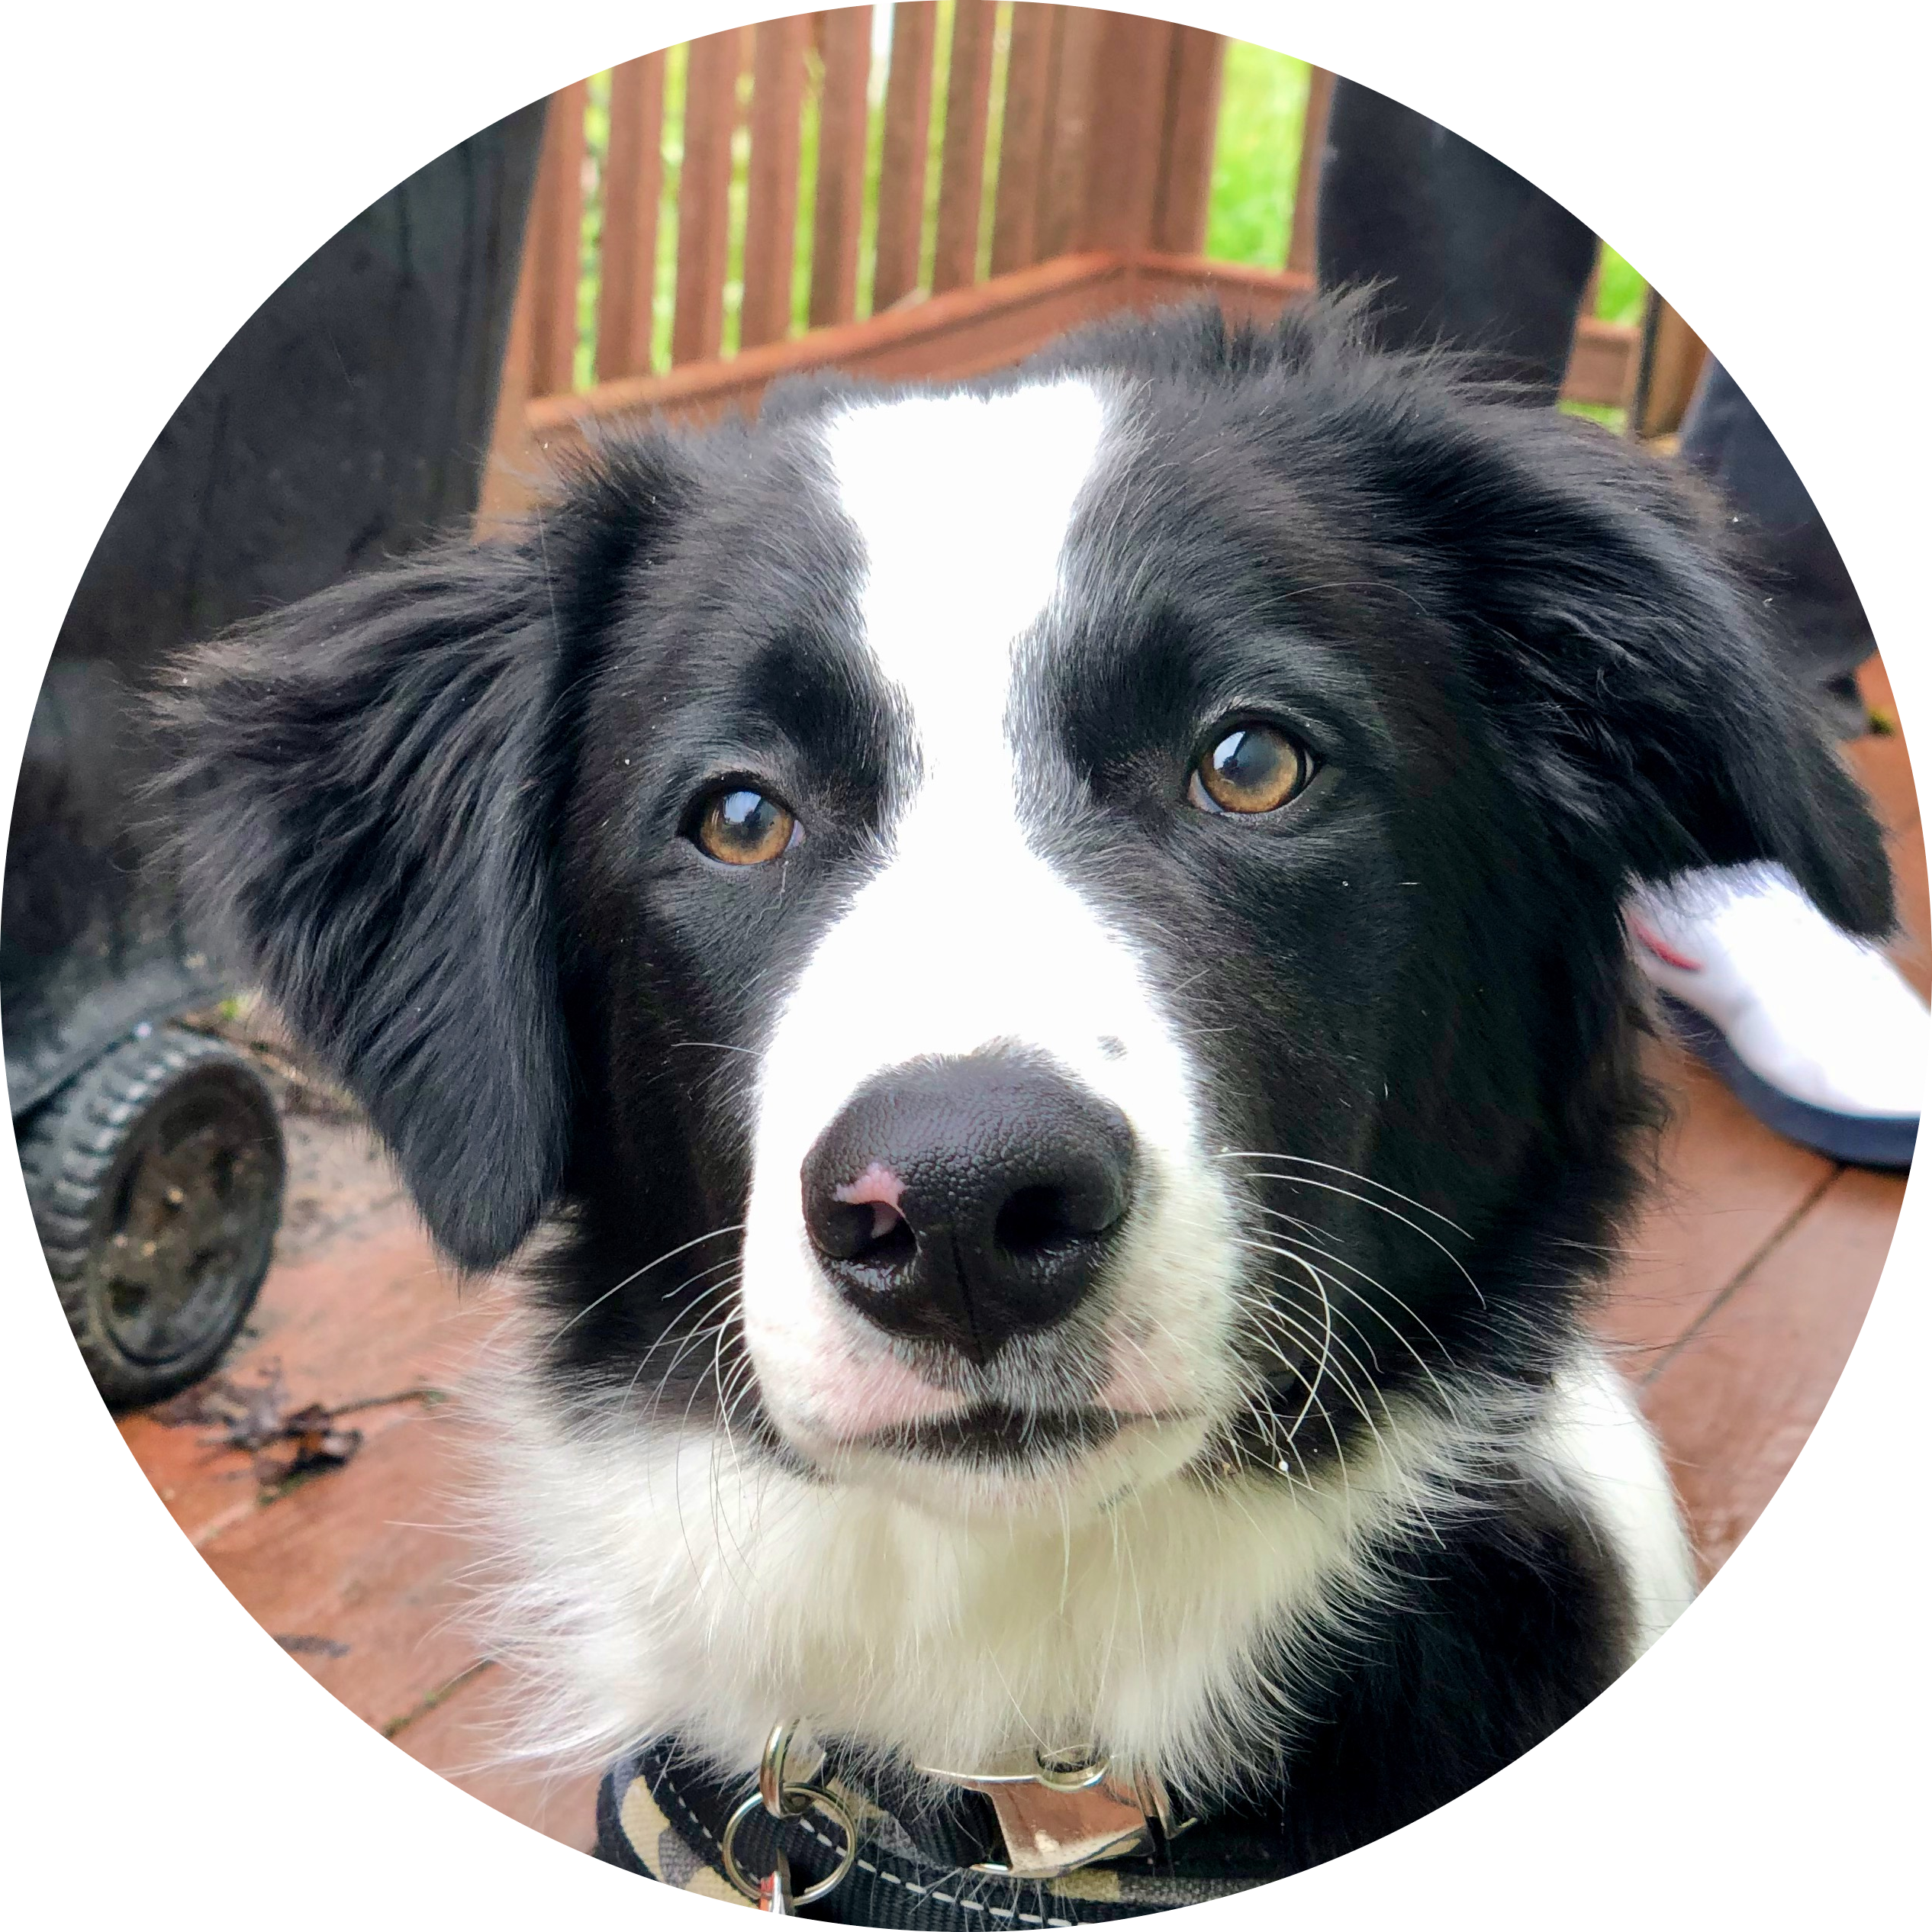 Chief is a border collie